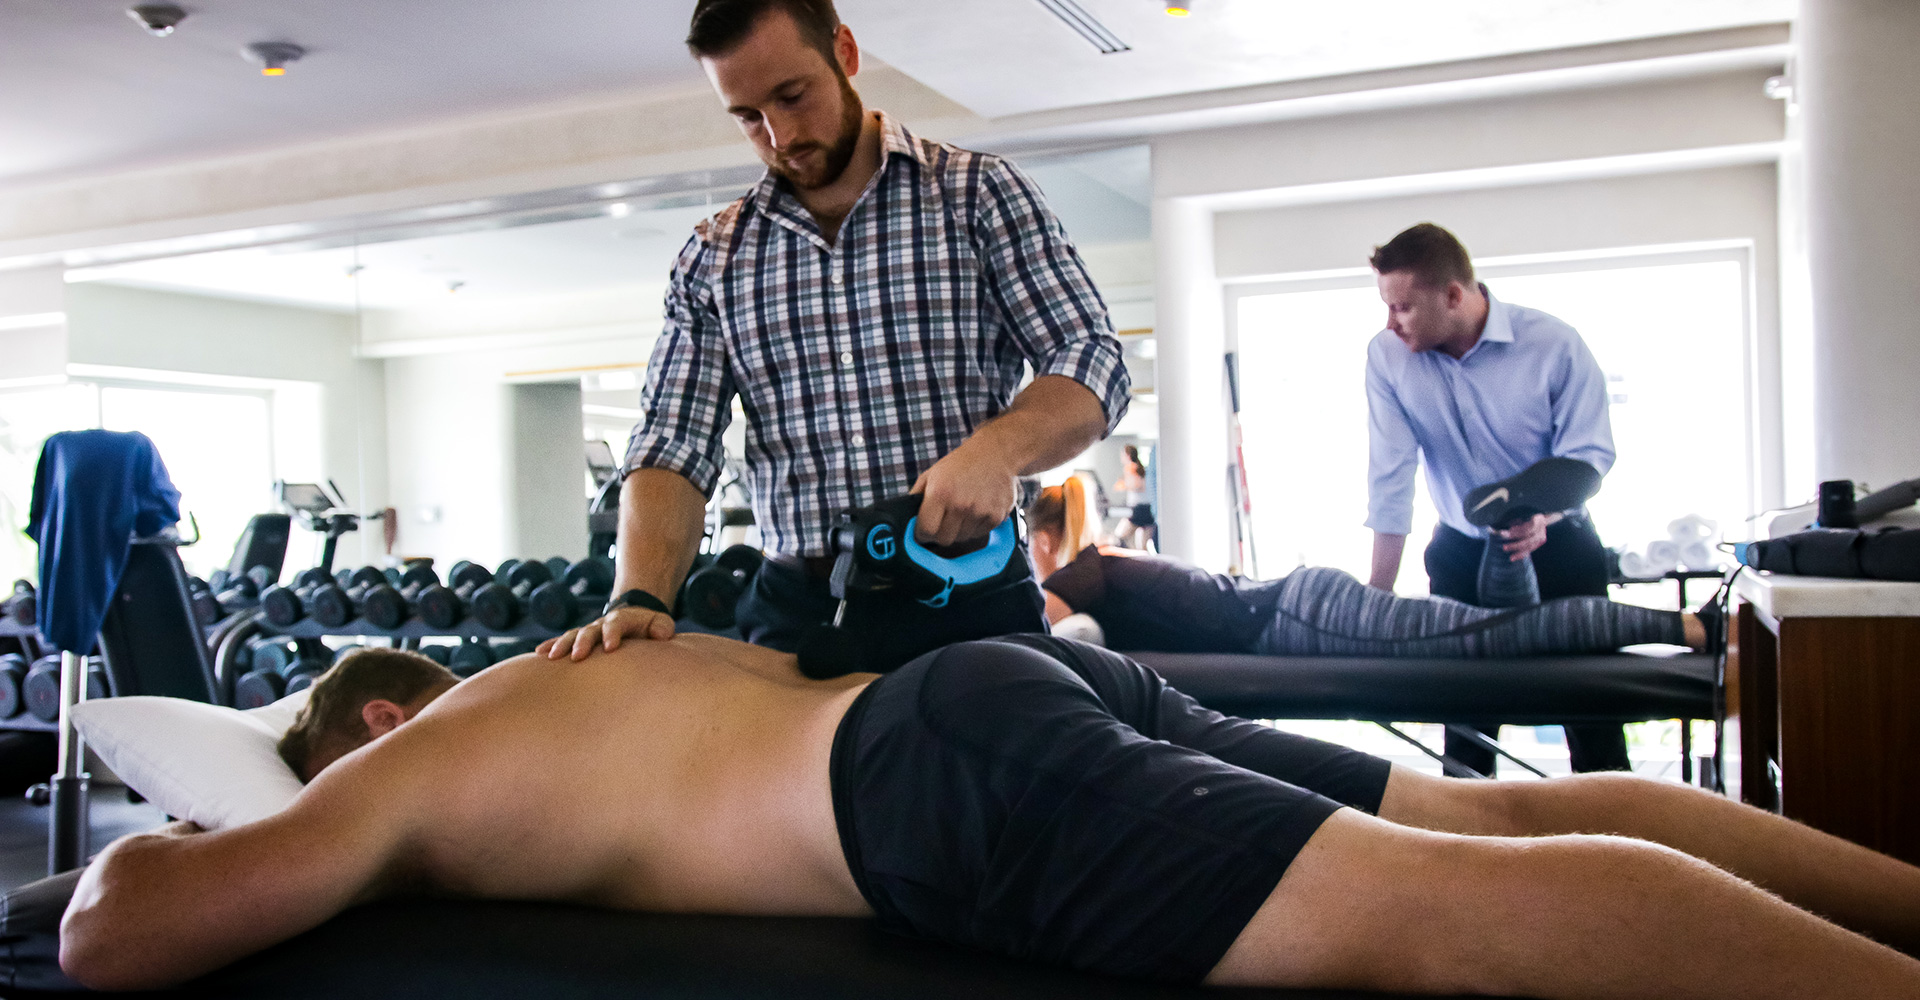 At USA Sports Therapy we offer the latest corrective exercises for any injury.